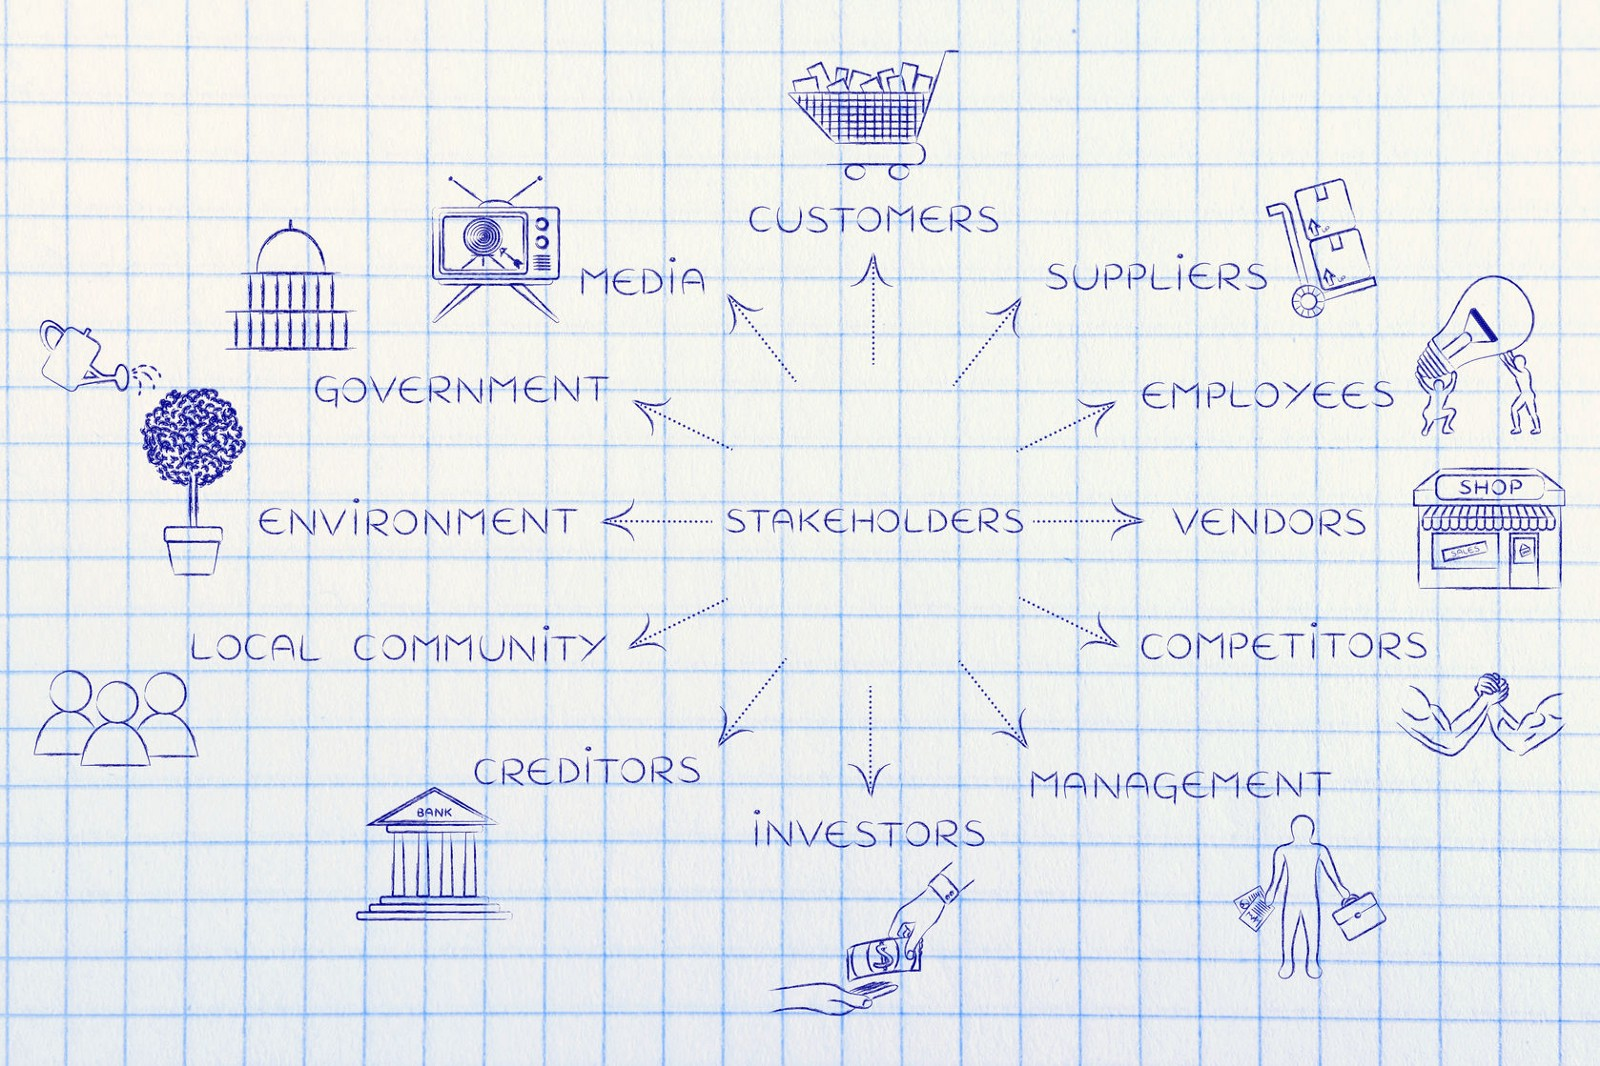 types of stakeholders in a company